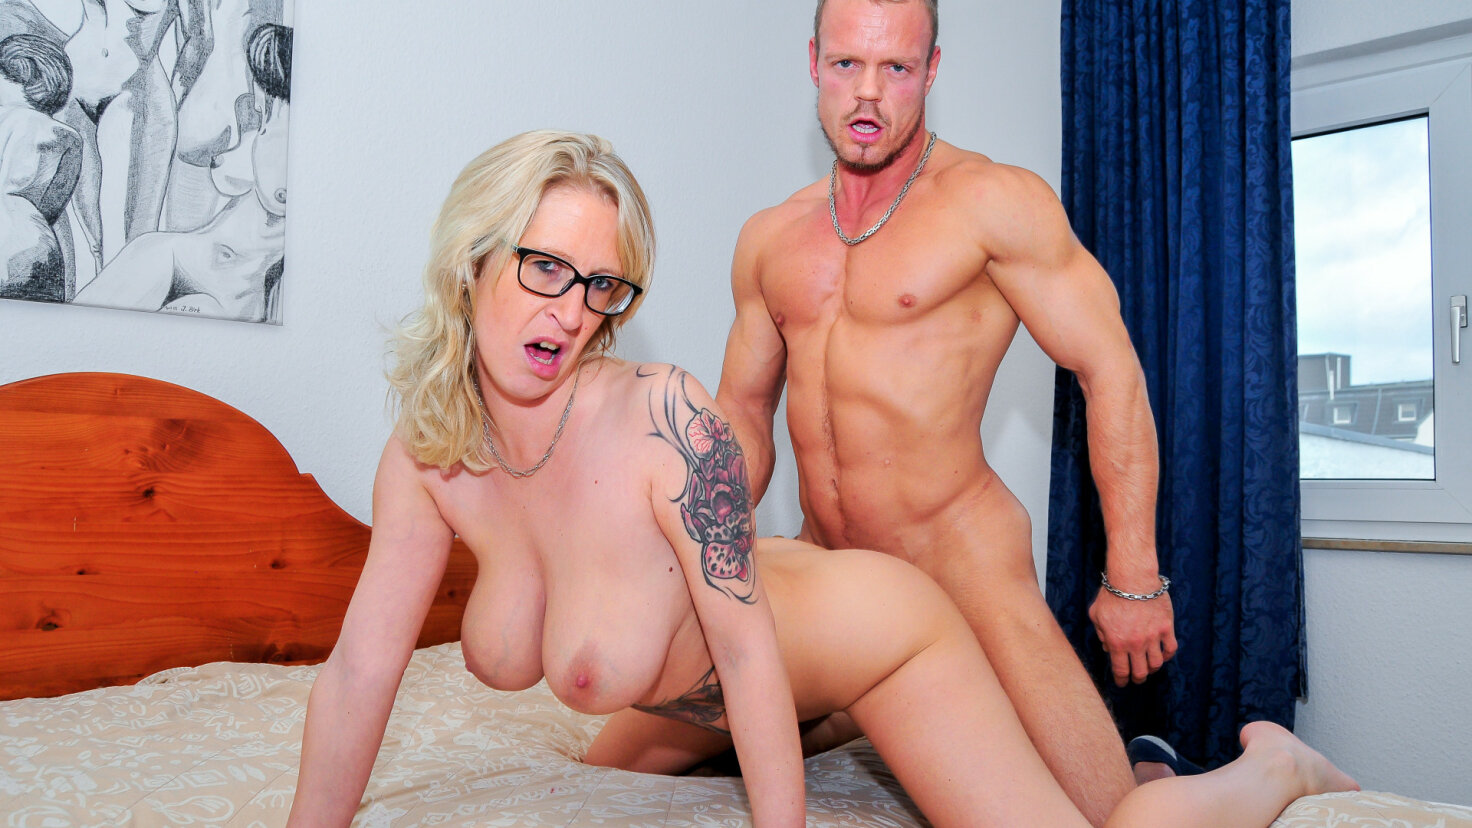 Amateur German porn features German blonde cougar fuck with cum on pussy